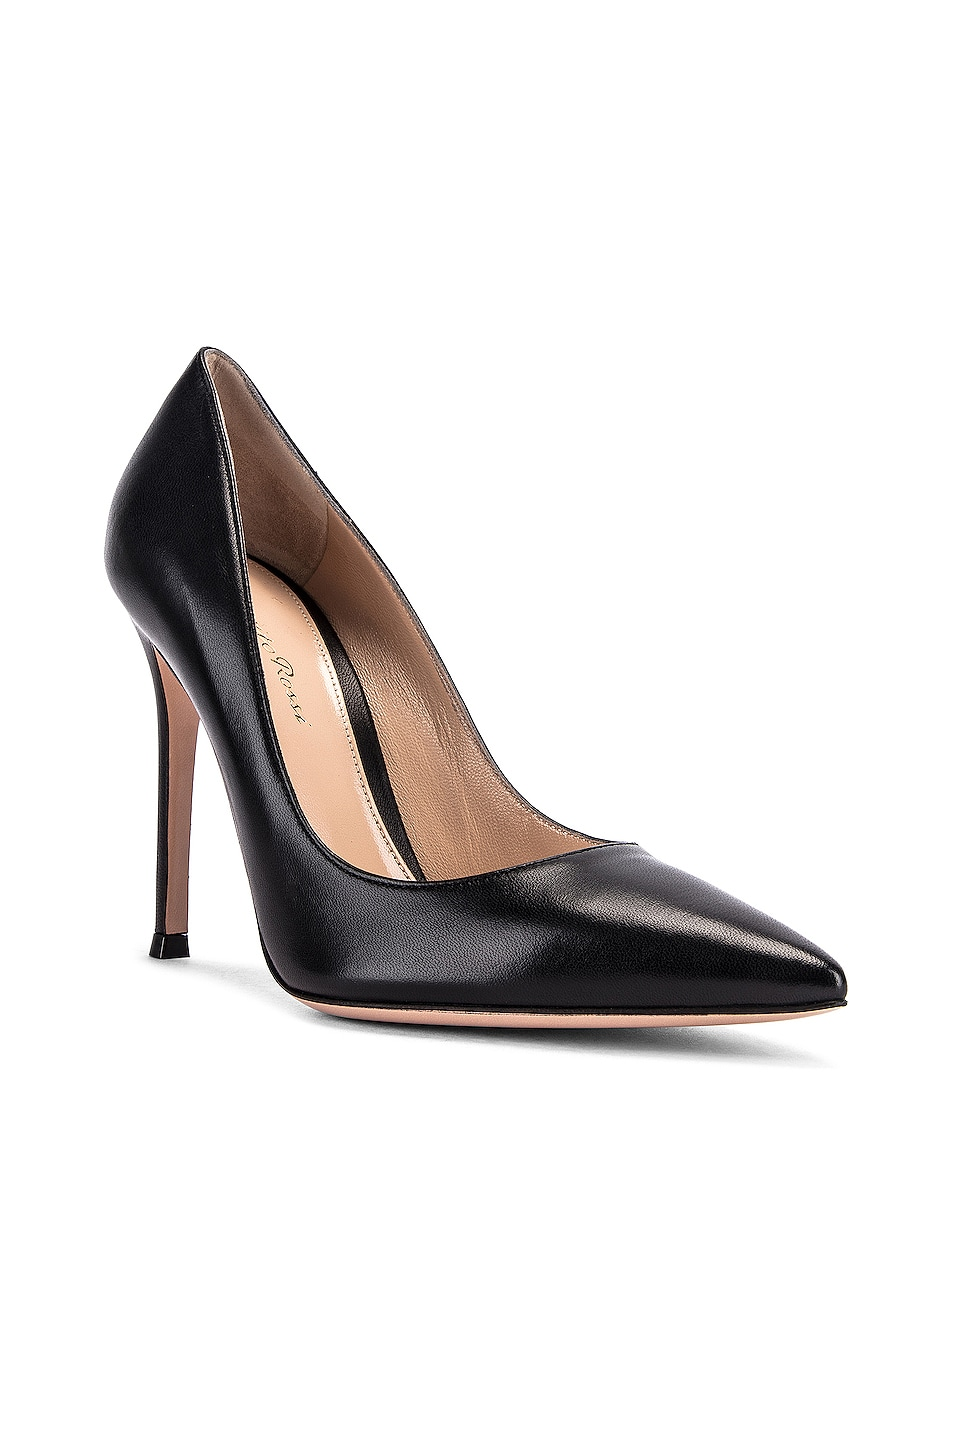 Image 2 of Gianvito Rossi Leather Pumps in Black